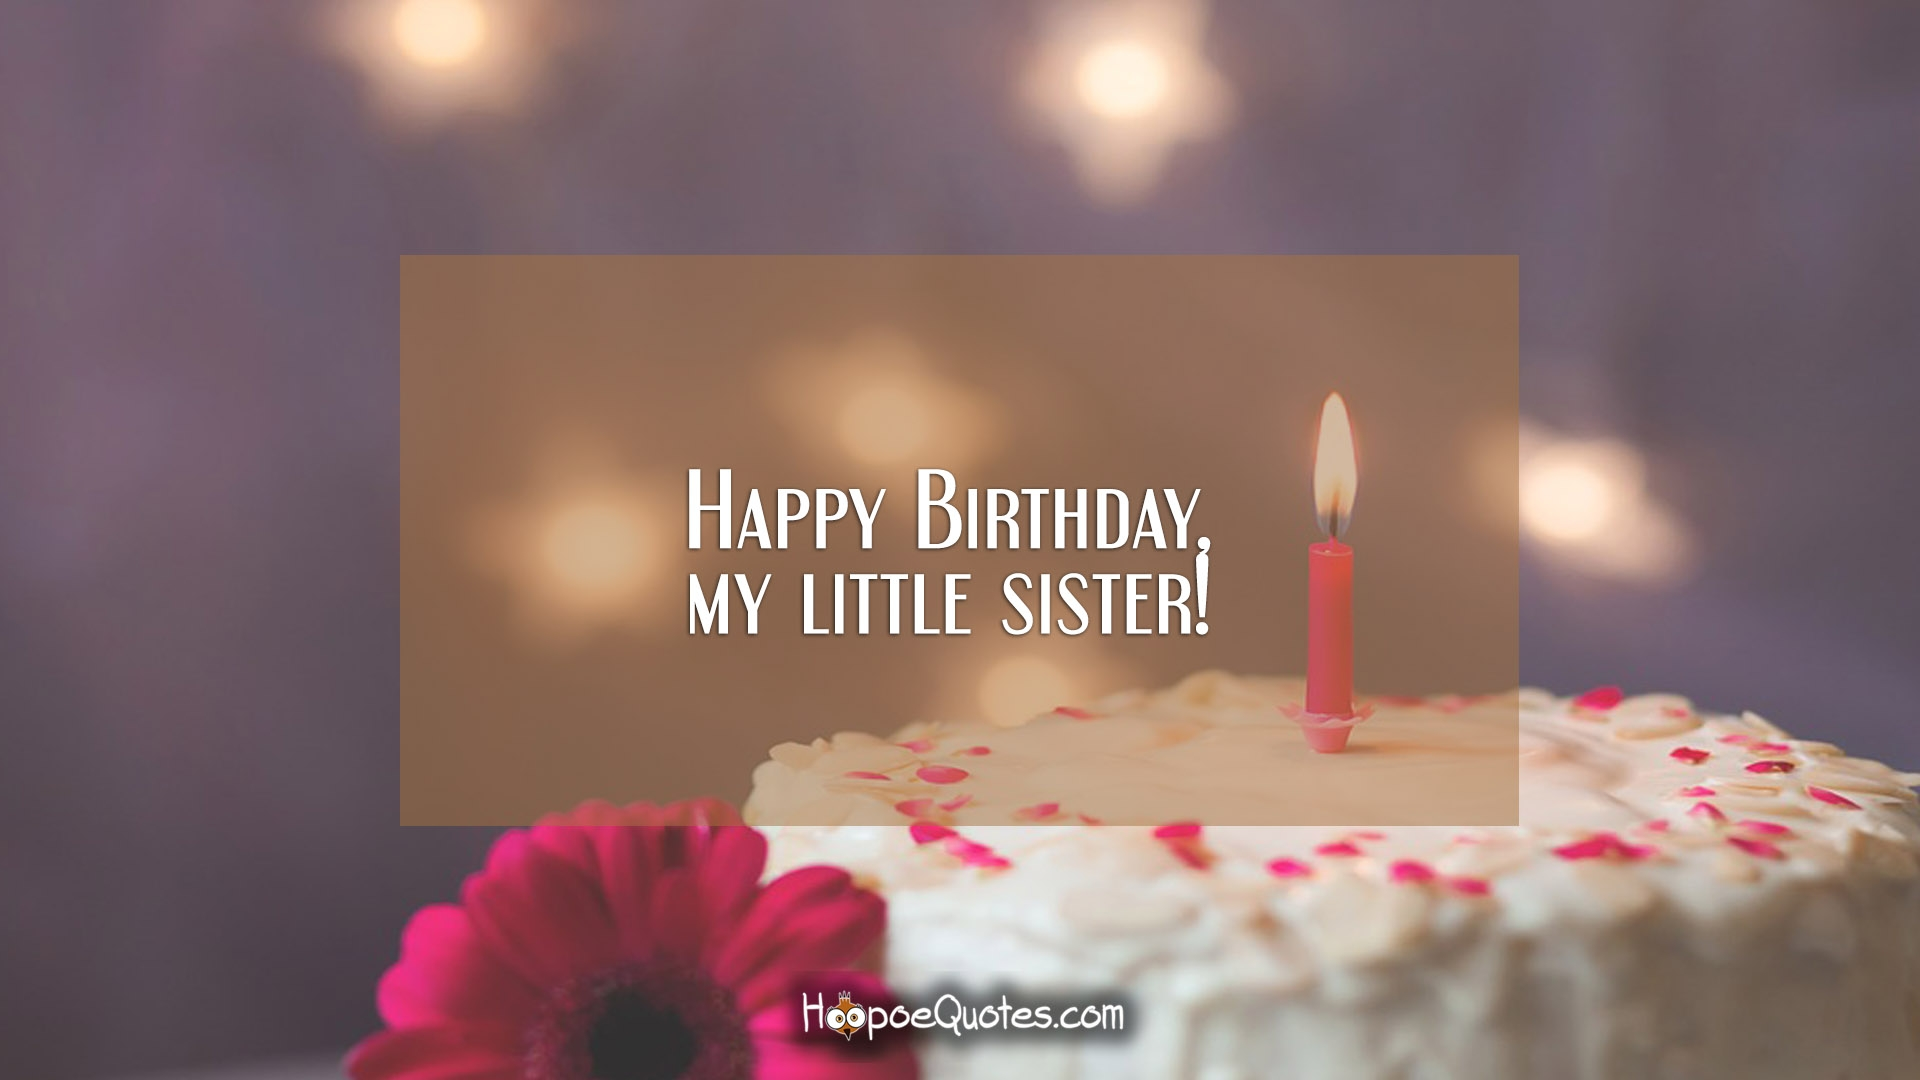 Magnificent Happy Birthday My Little Sister Hoopoequotes Funny Birthday Cards Online Fluifree Goldxyz